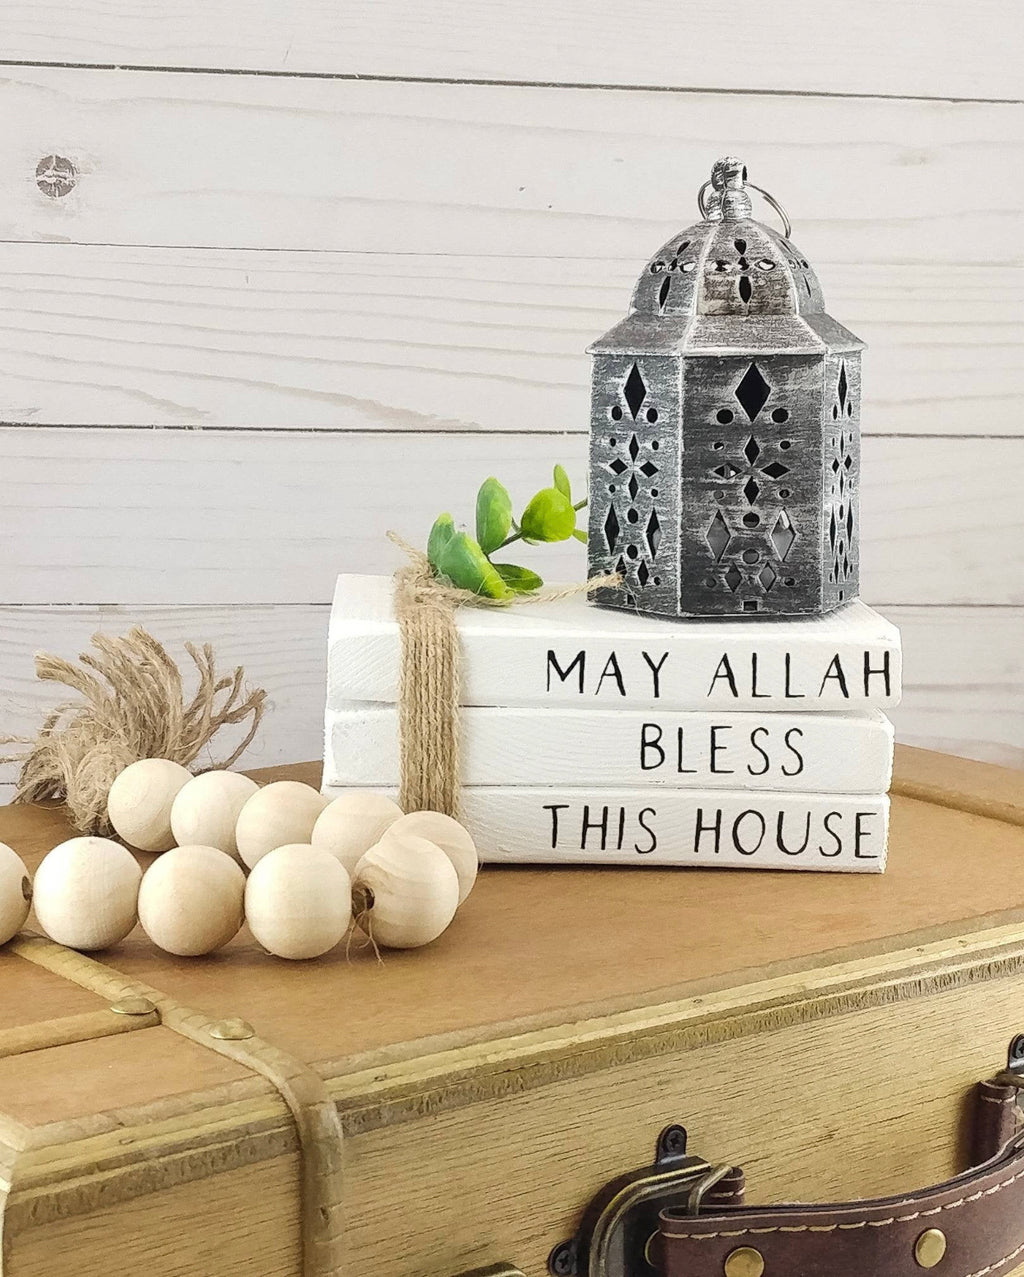 May Allah Bless This House - Stacked Books Decor-Crescent Moon Store-Stacked Books + Wood Beads-Crescent Moon Store